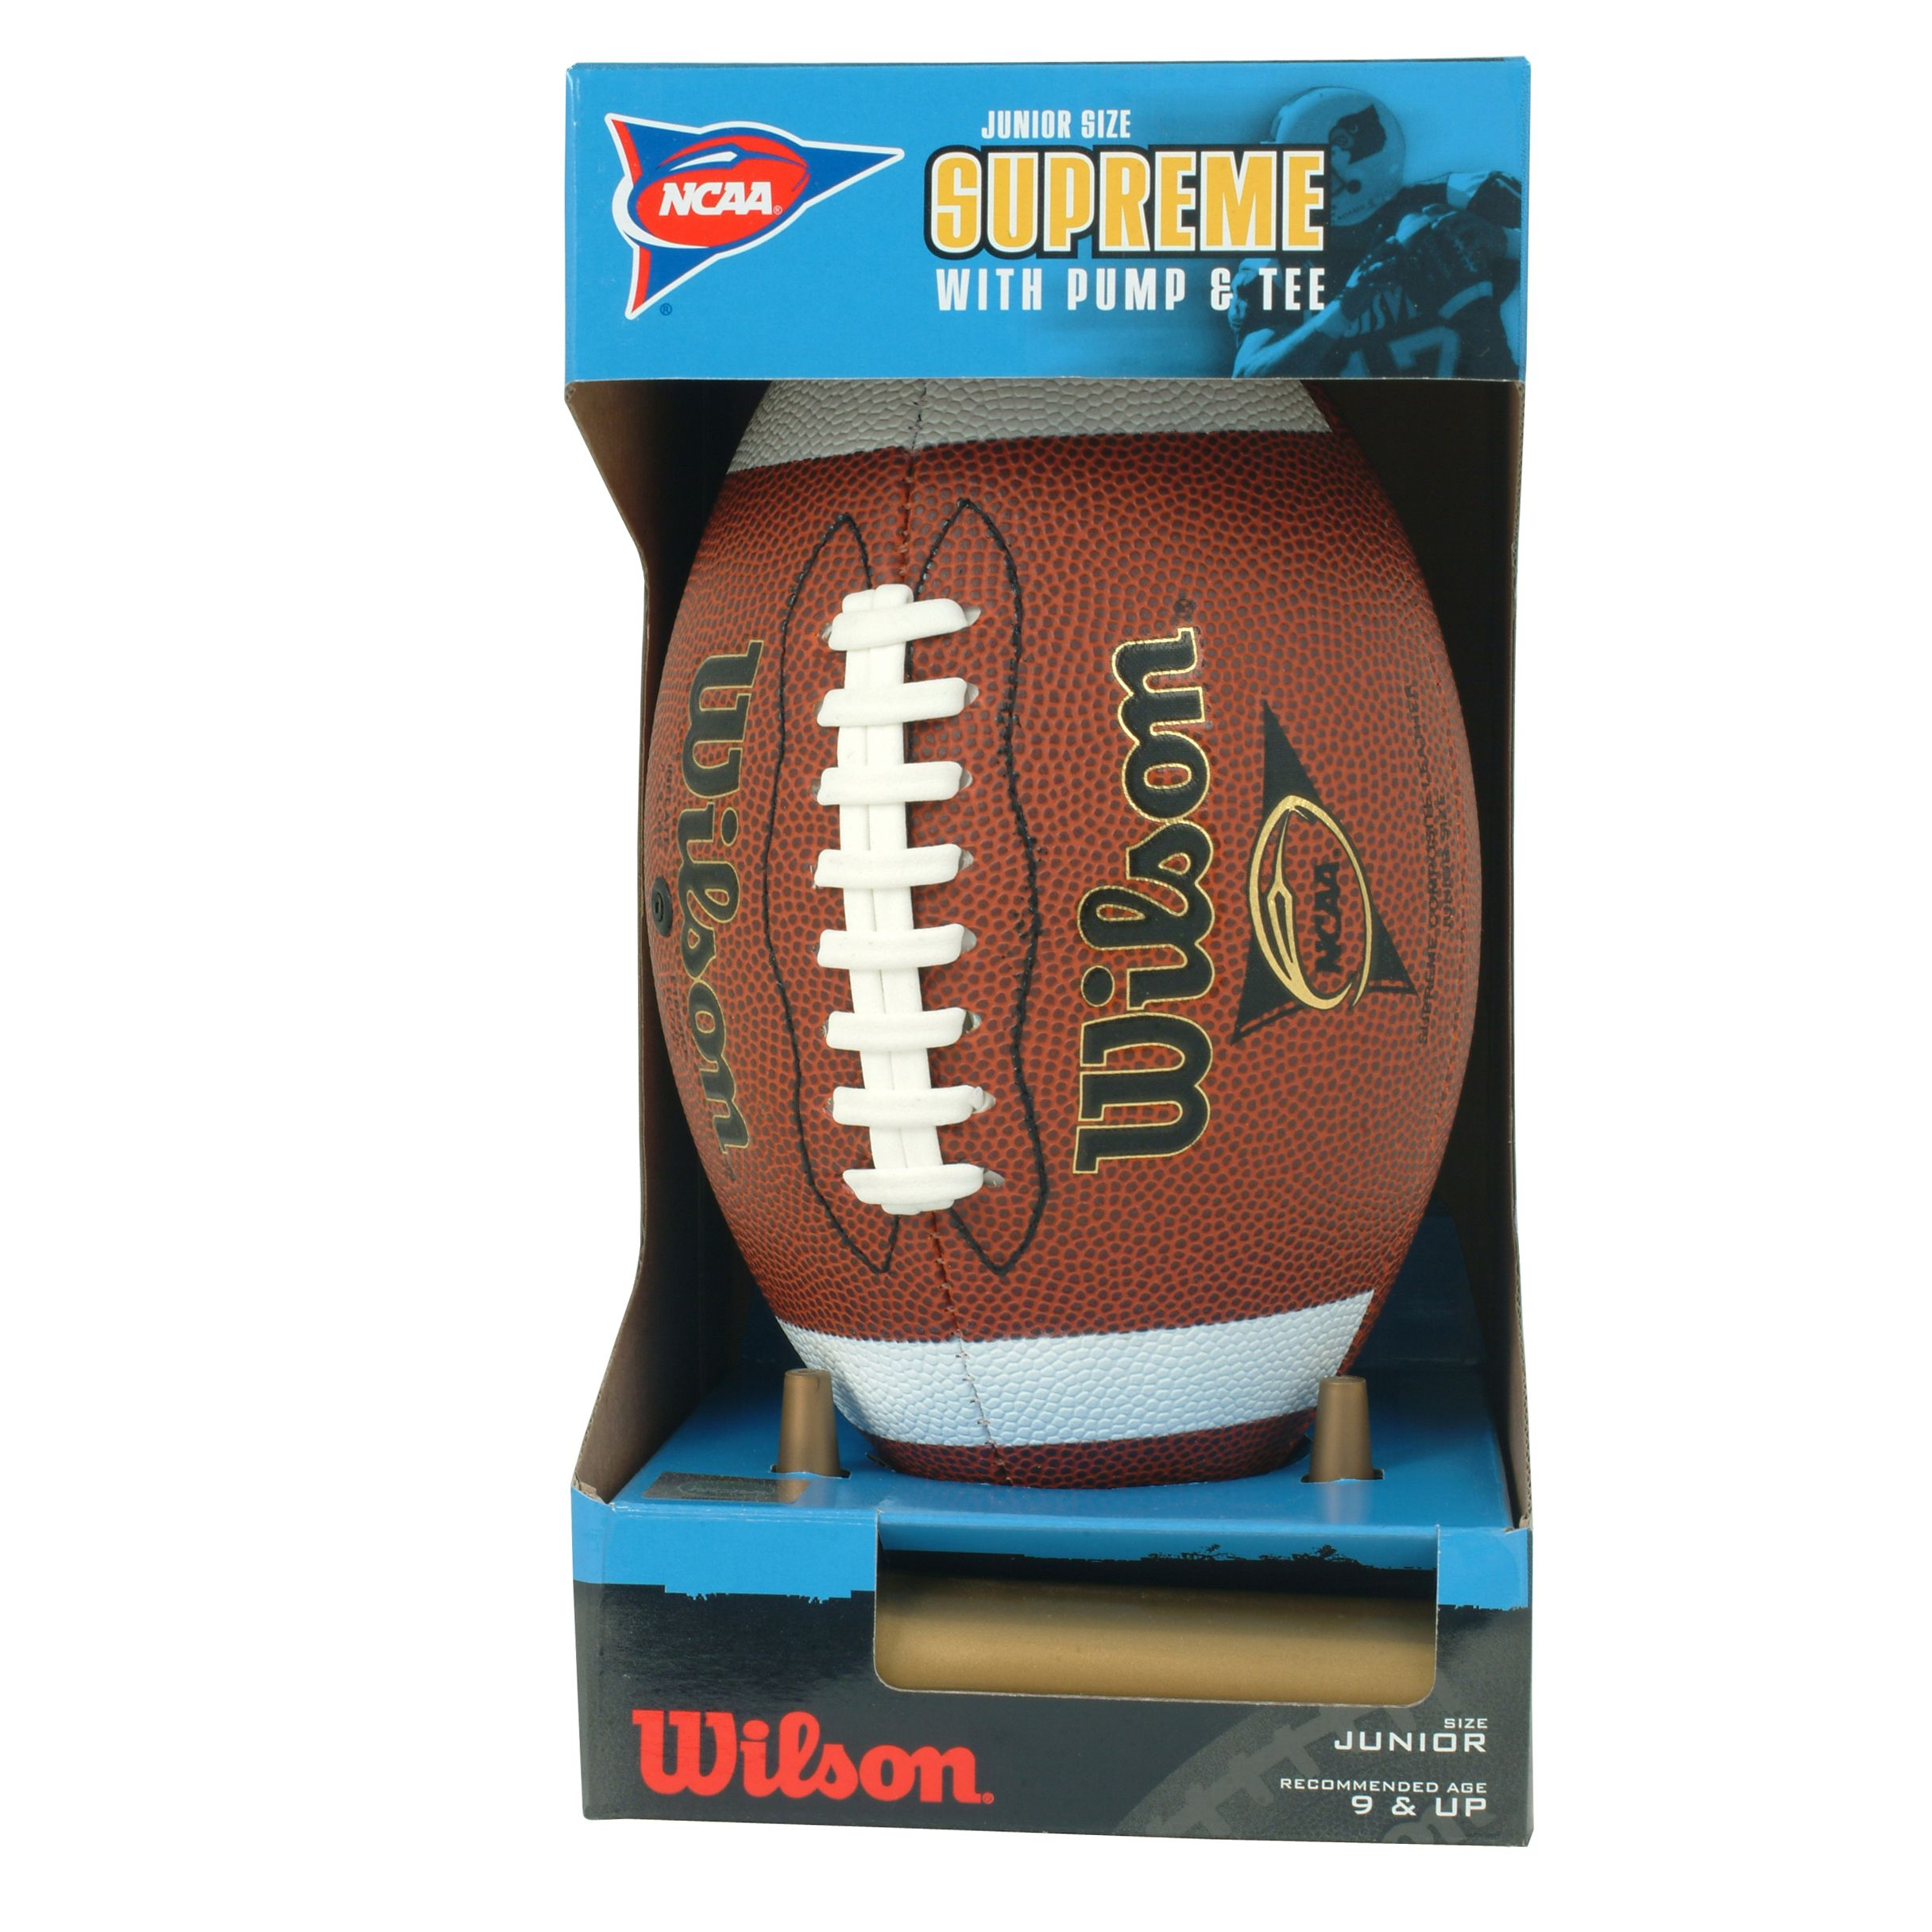 NCAA Supreme Junior Competition Football